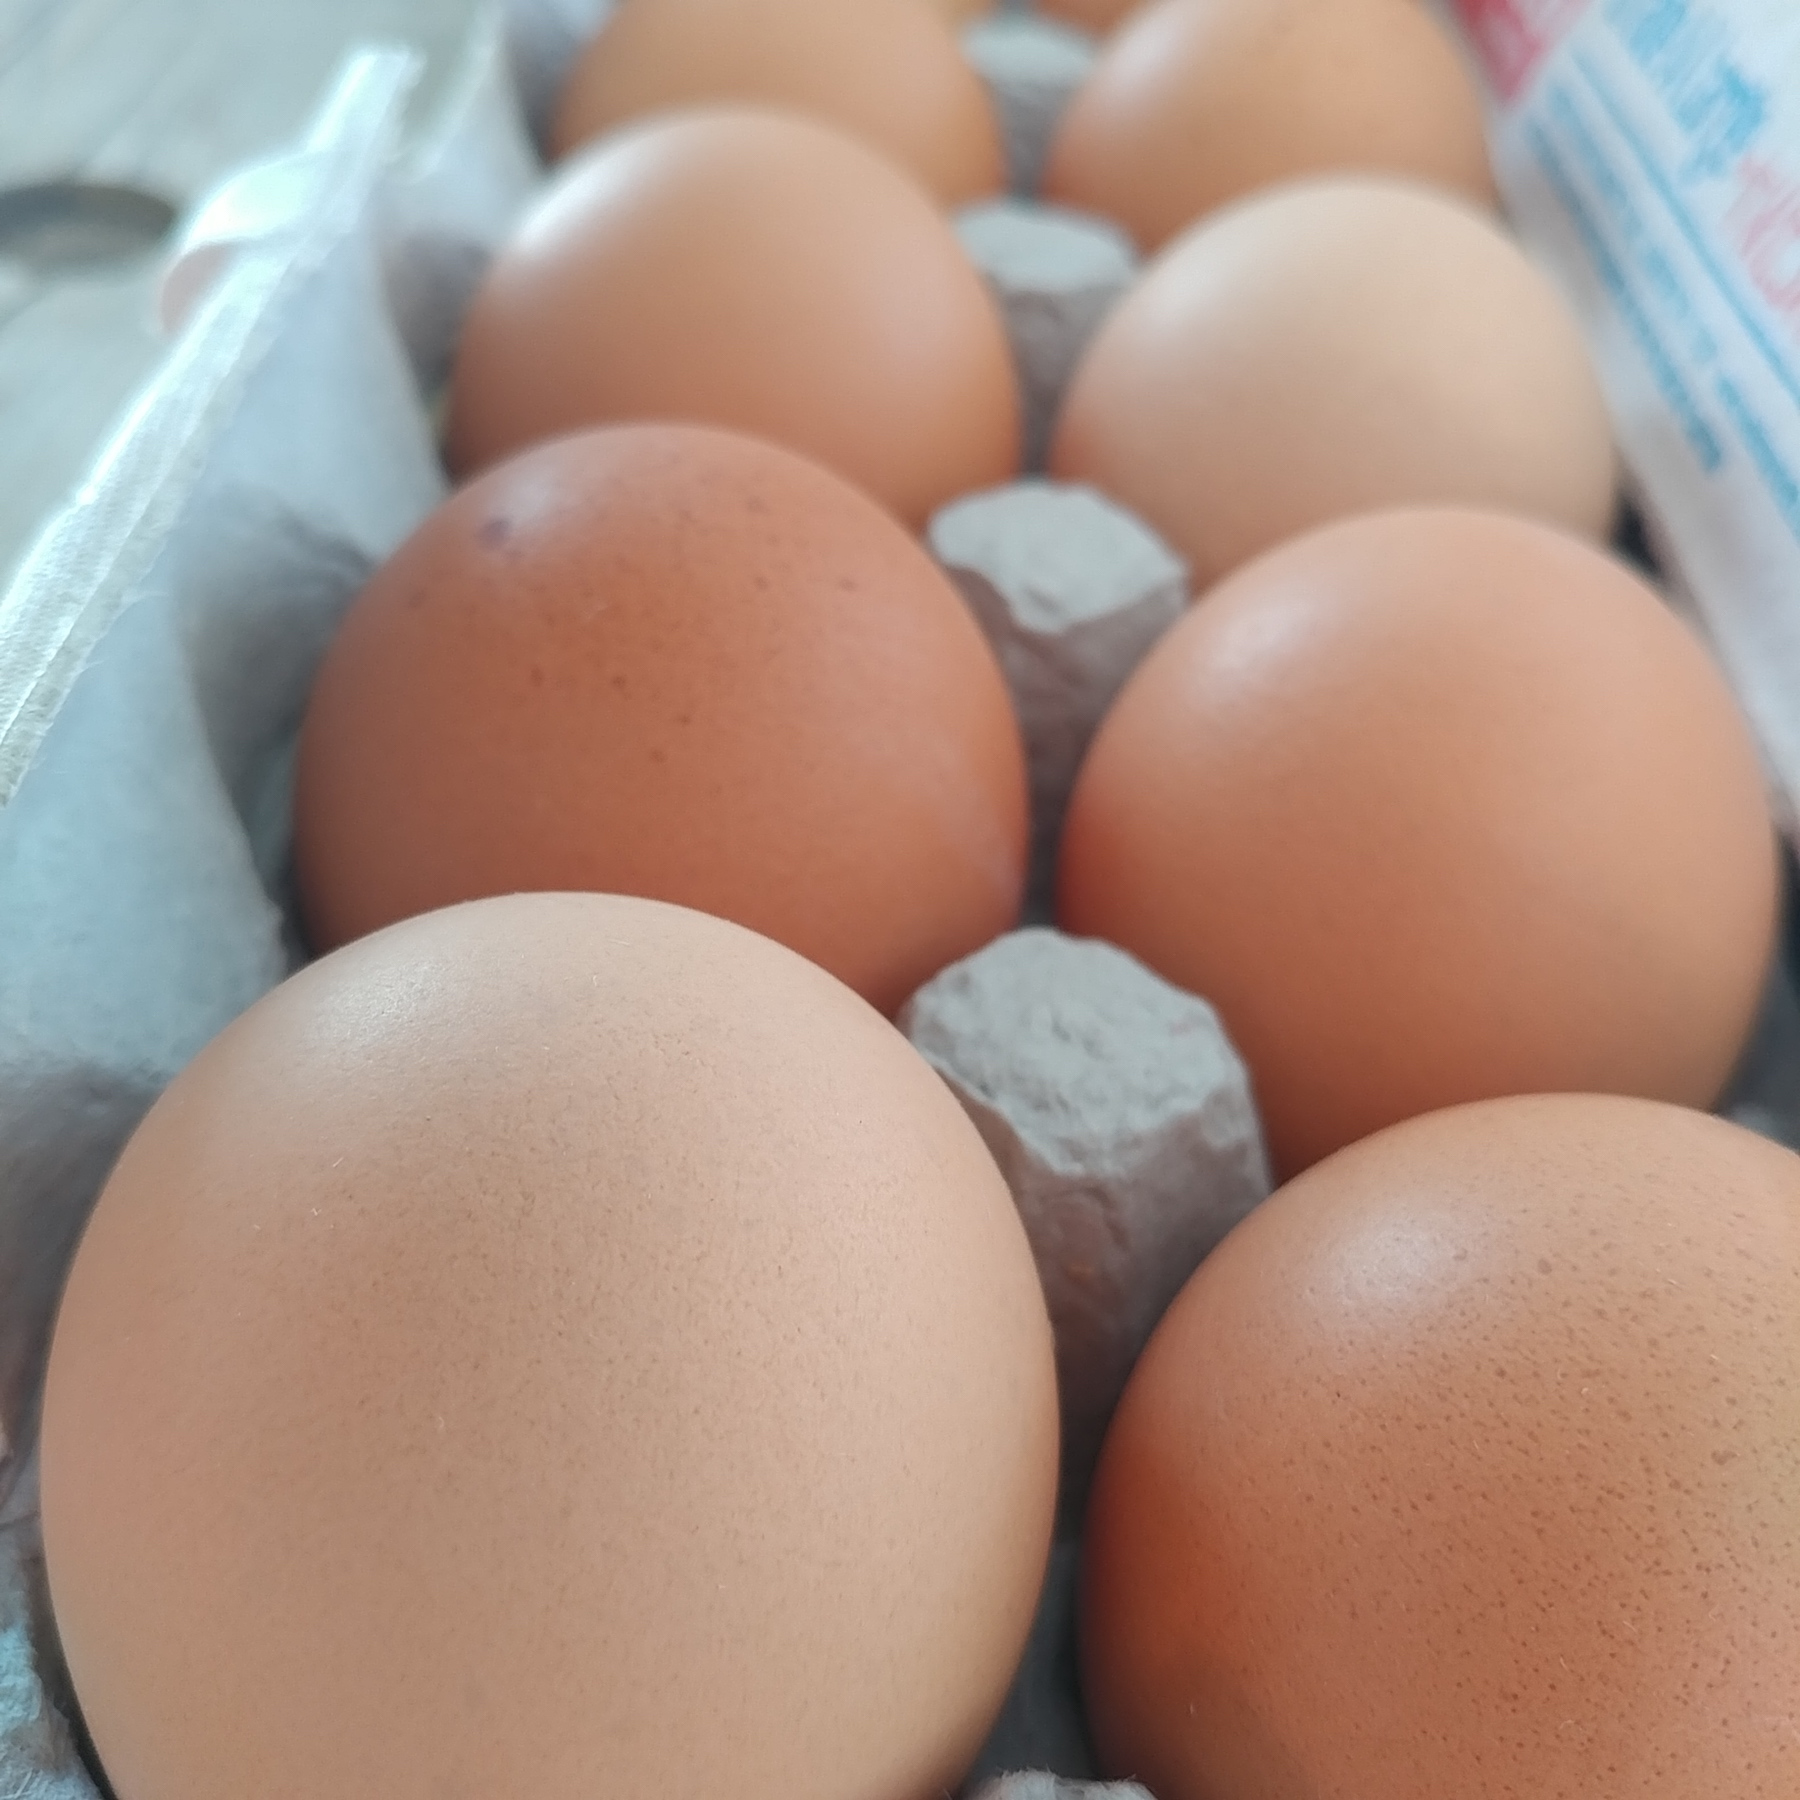 Egg Share, 1 Dozen